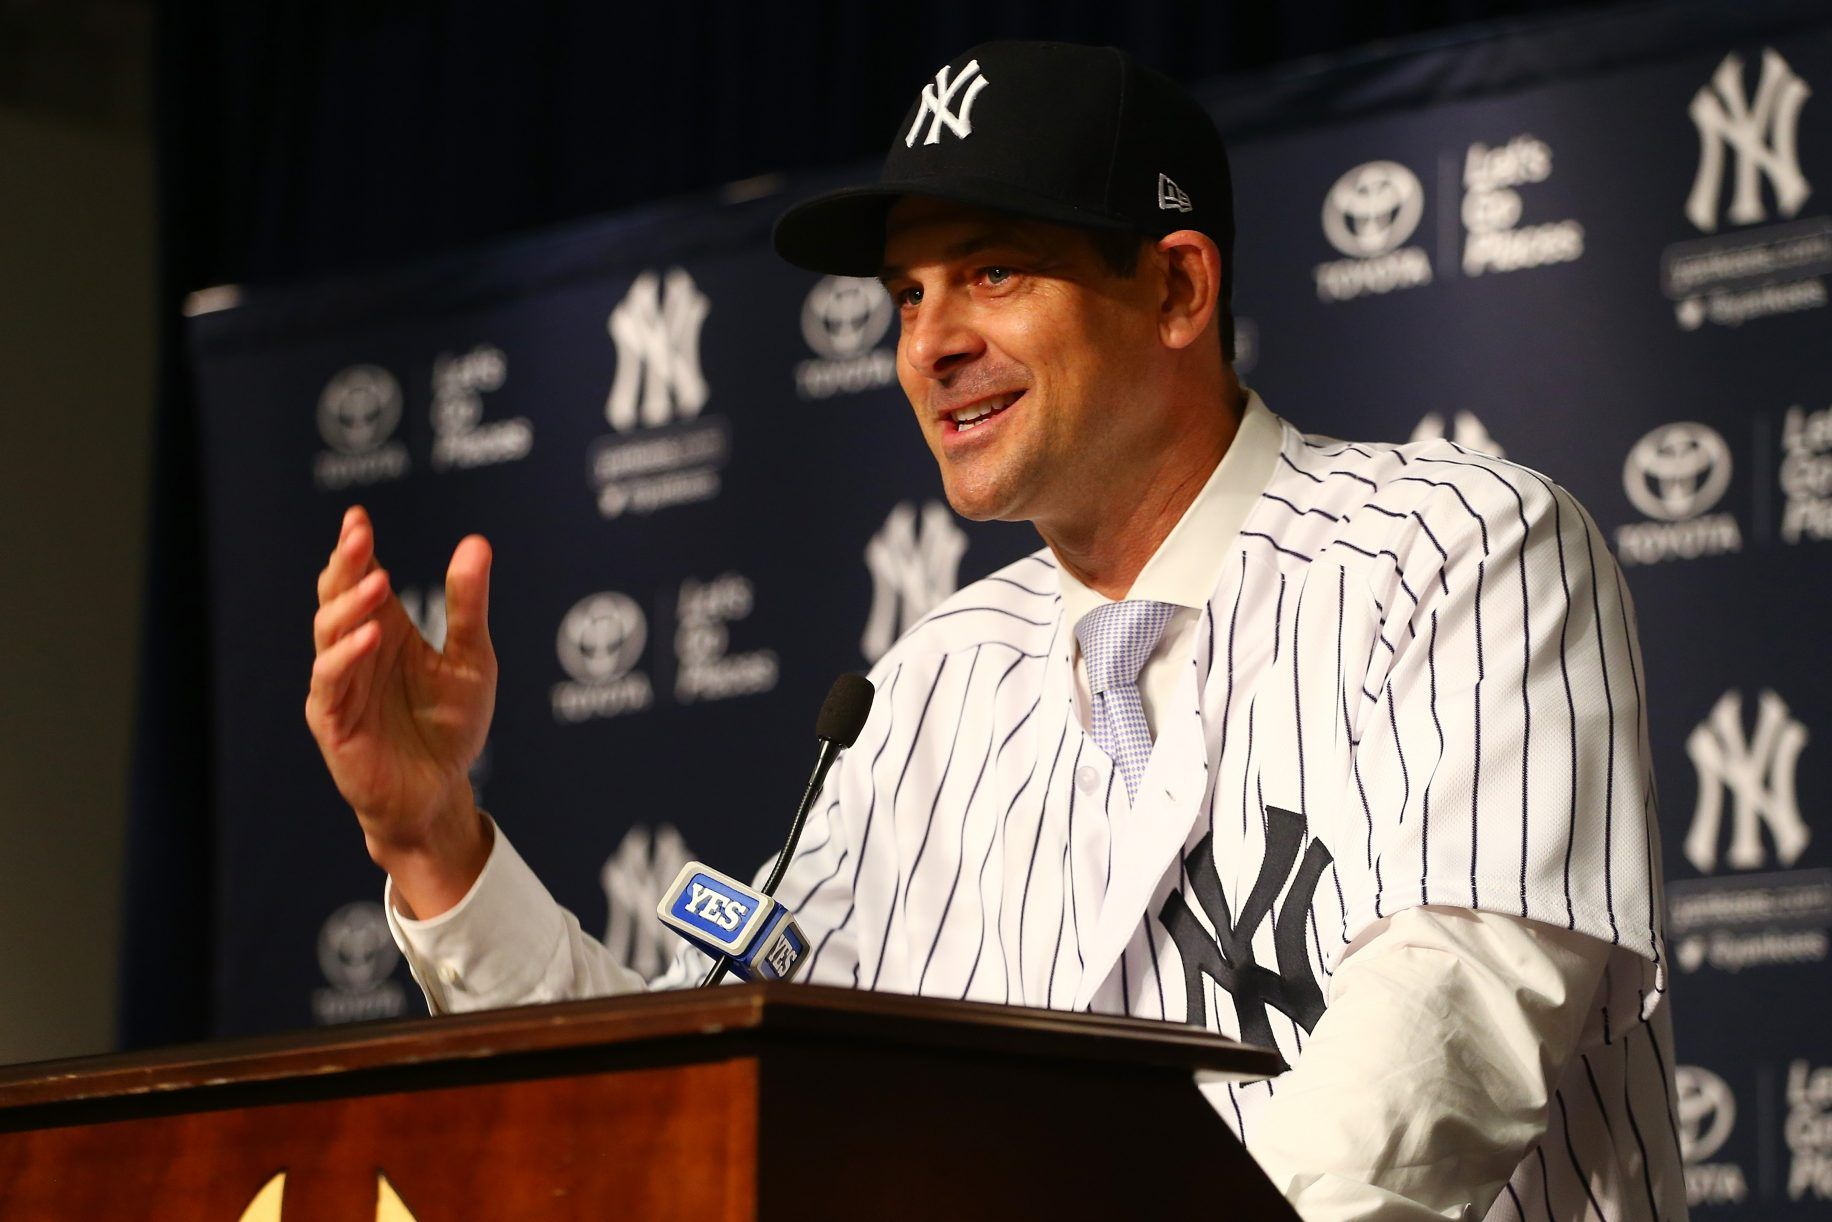 For the second time in 44 years, Aaron Boone put on the